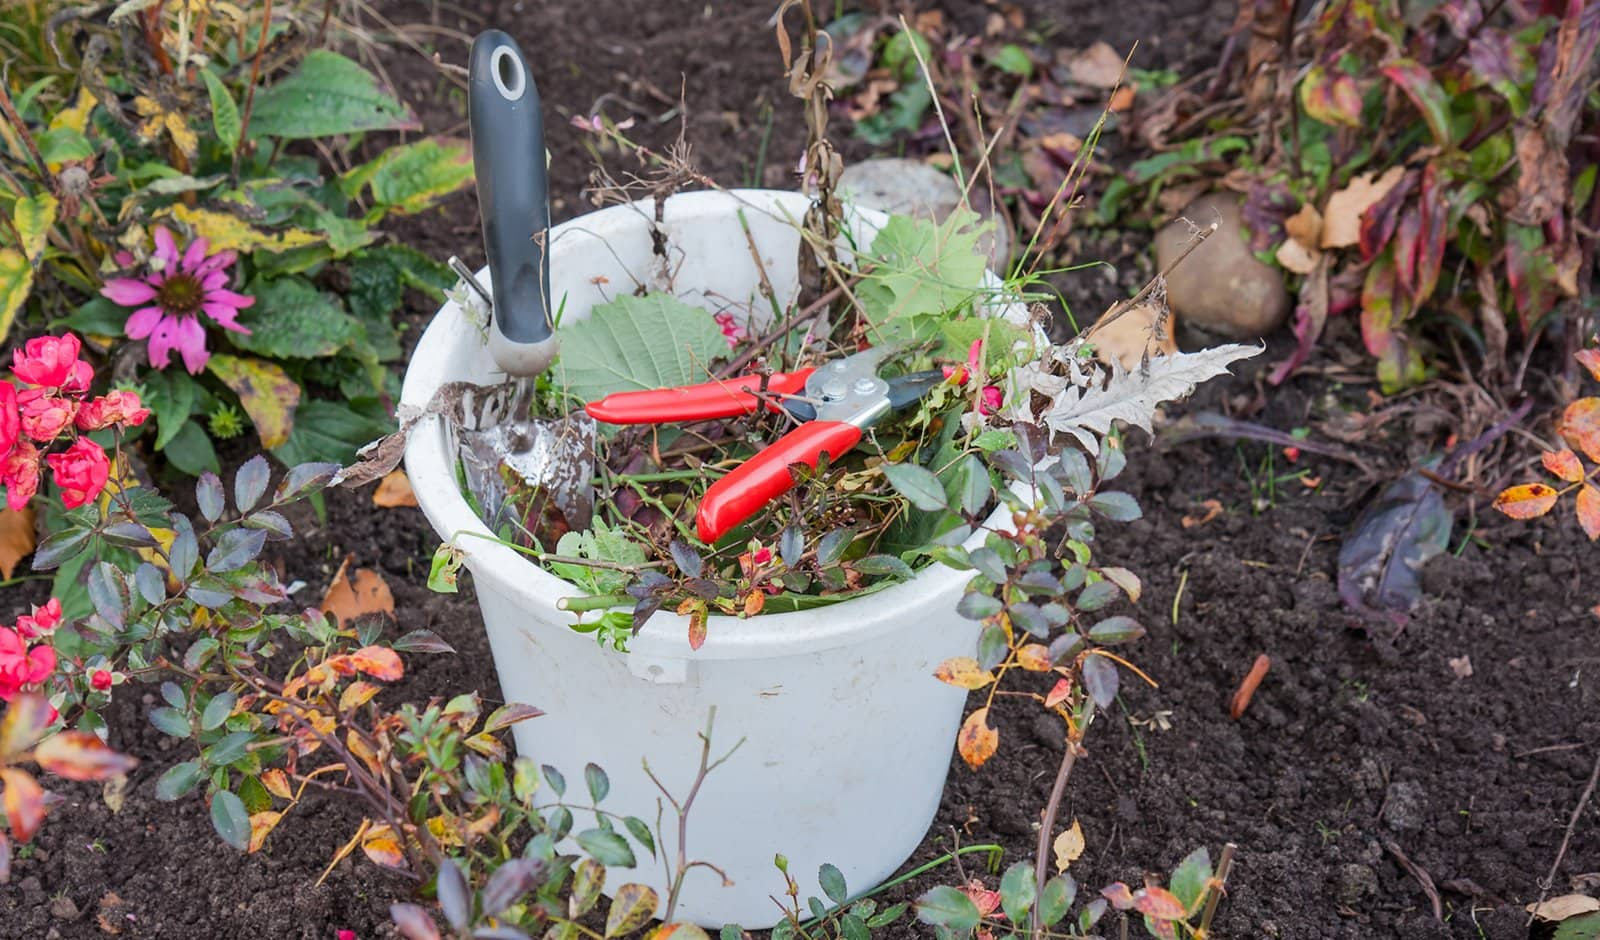 Fall Cleanup in Your Garden